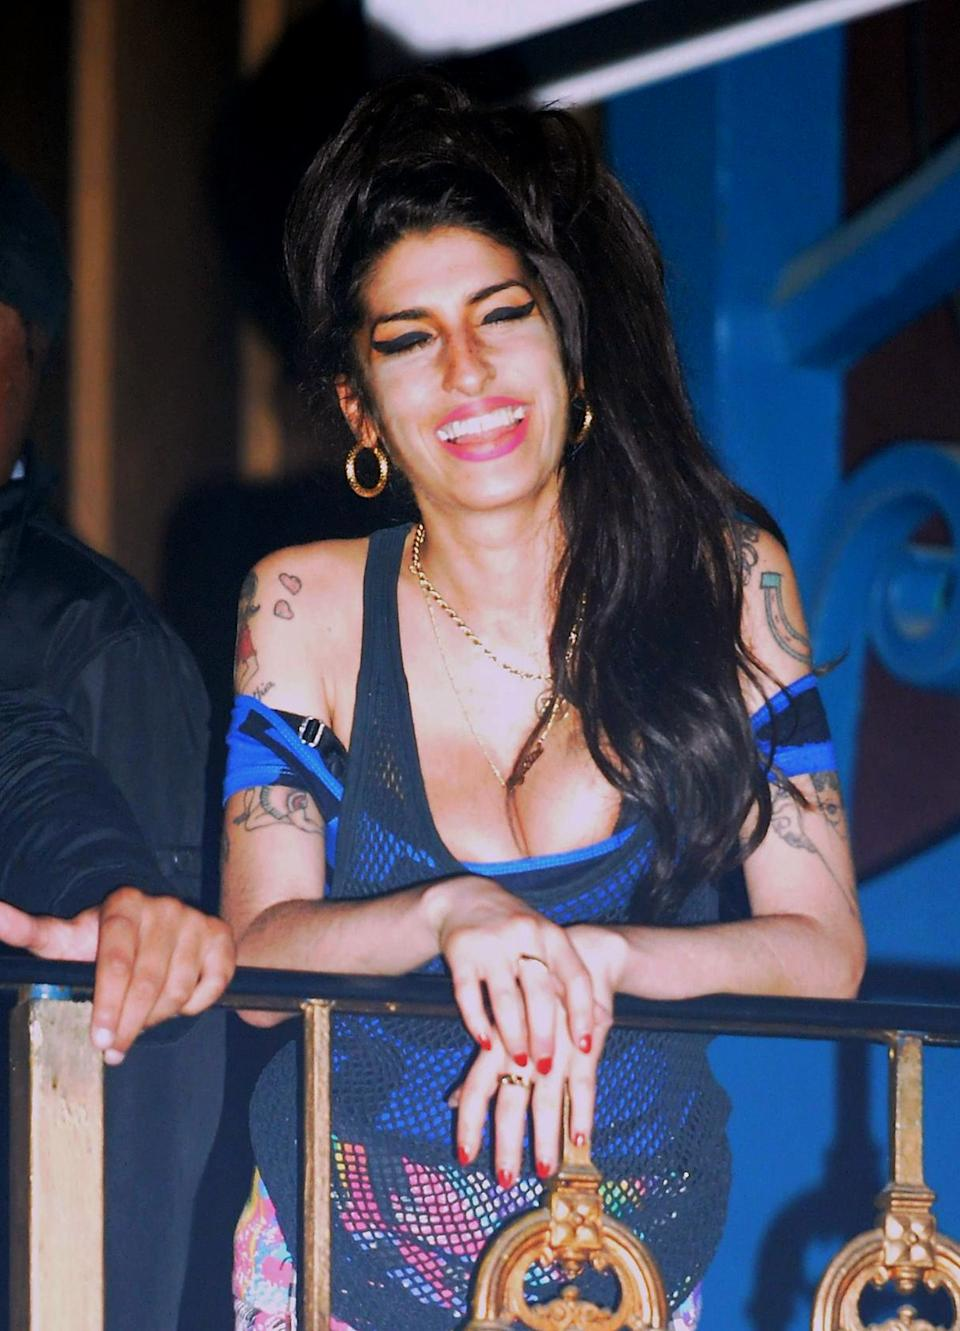 Amy Winehouse watches the Libertines perform on stage at the Forum in Highgate, London.